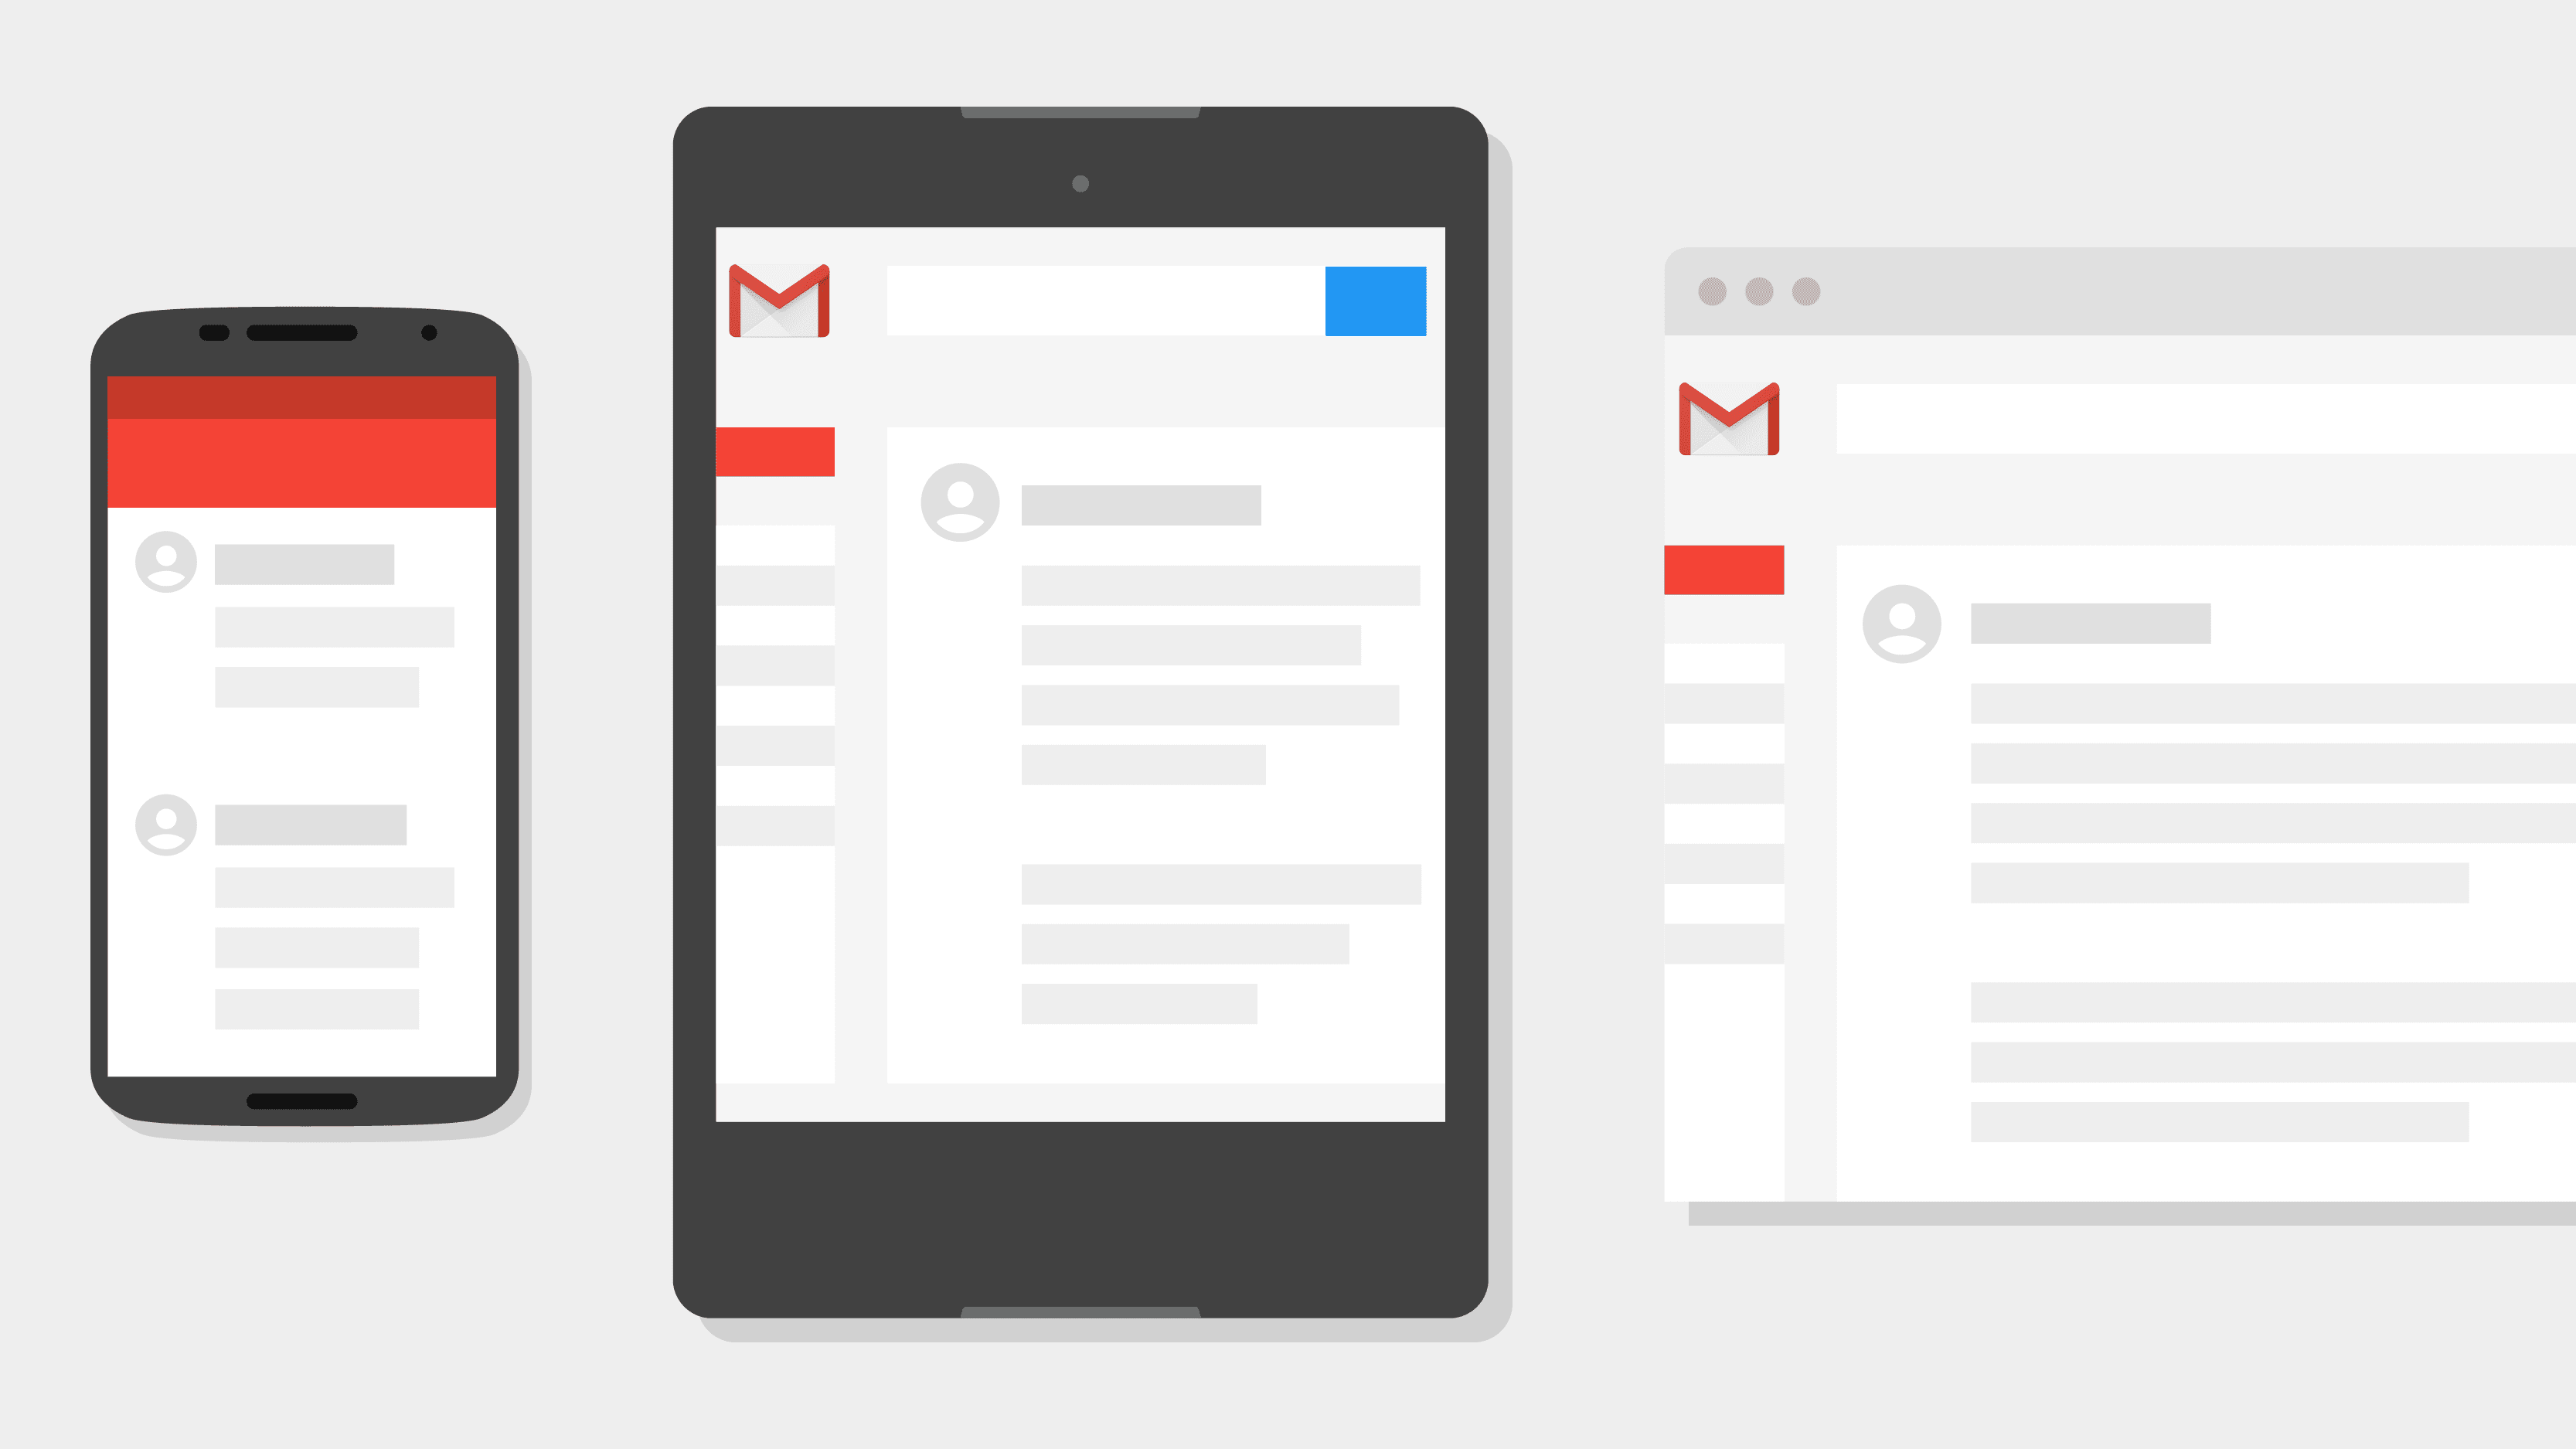 How to schedule send an email on Gmail